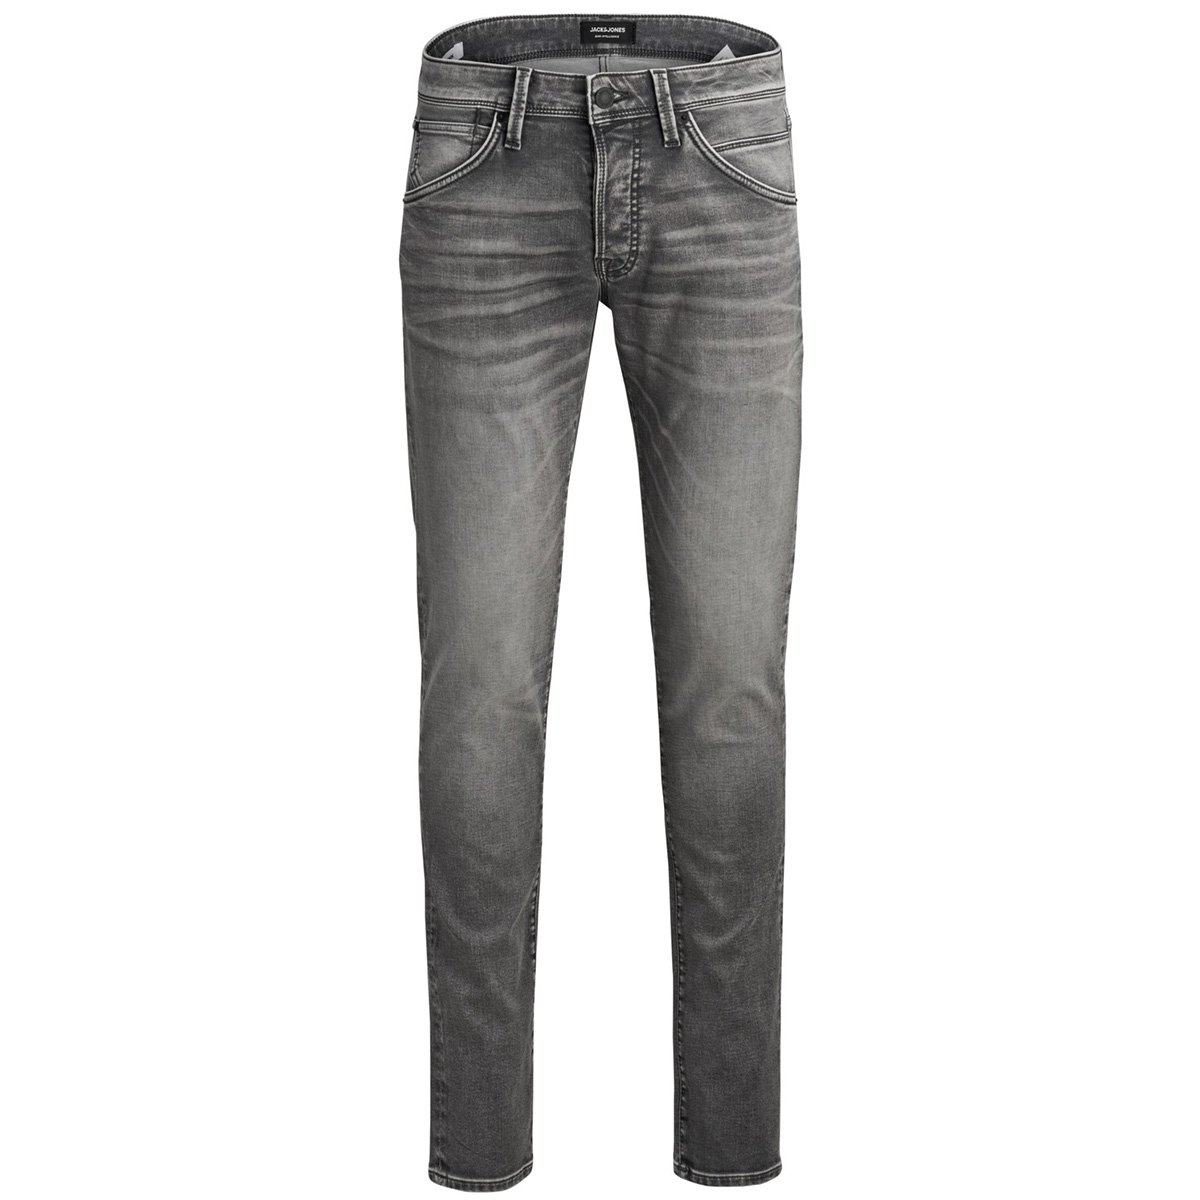 jjiglenn jjoriginal jos 800 i.k 12163486 jack & jones jeans black denim